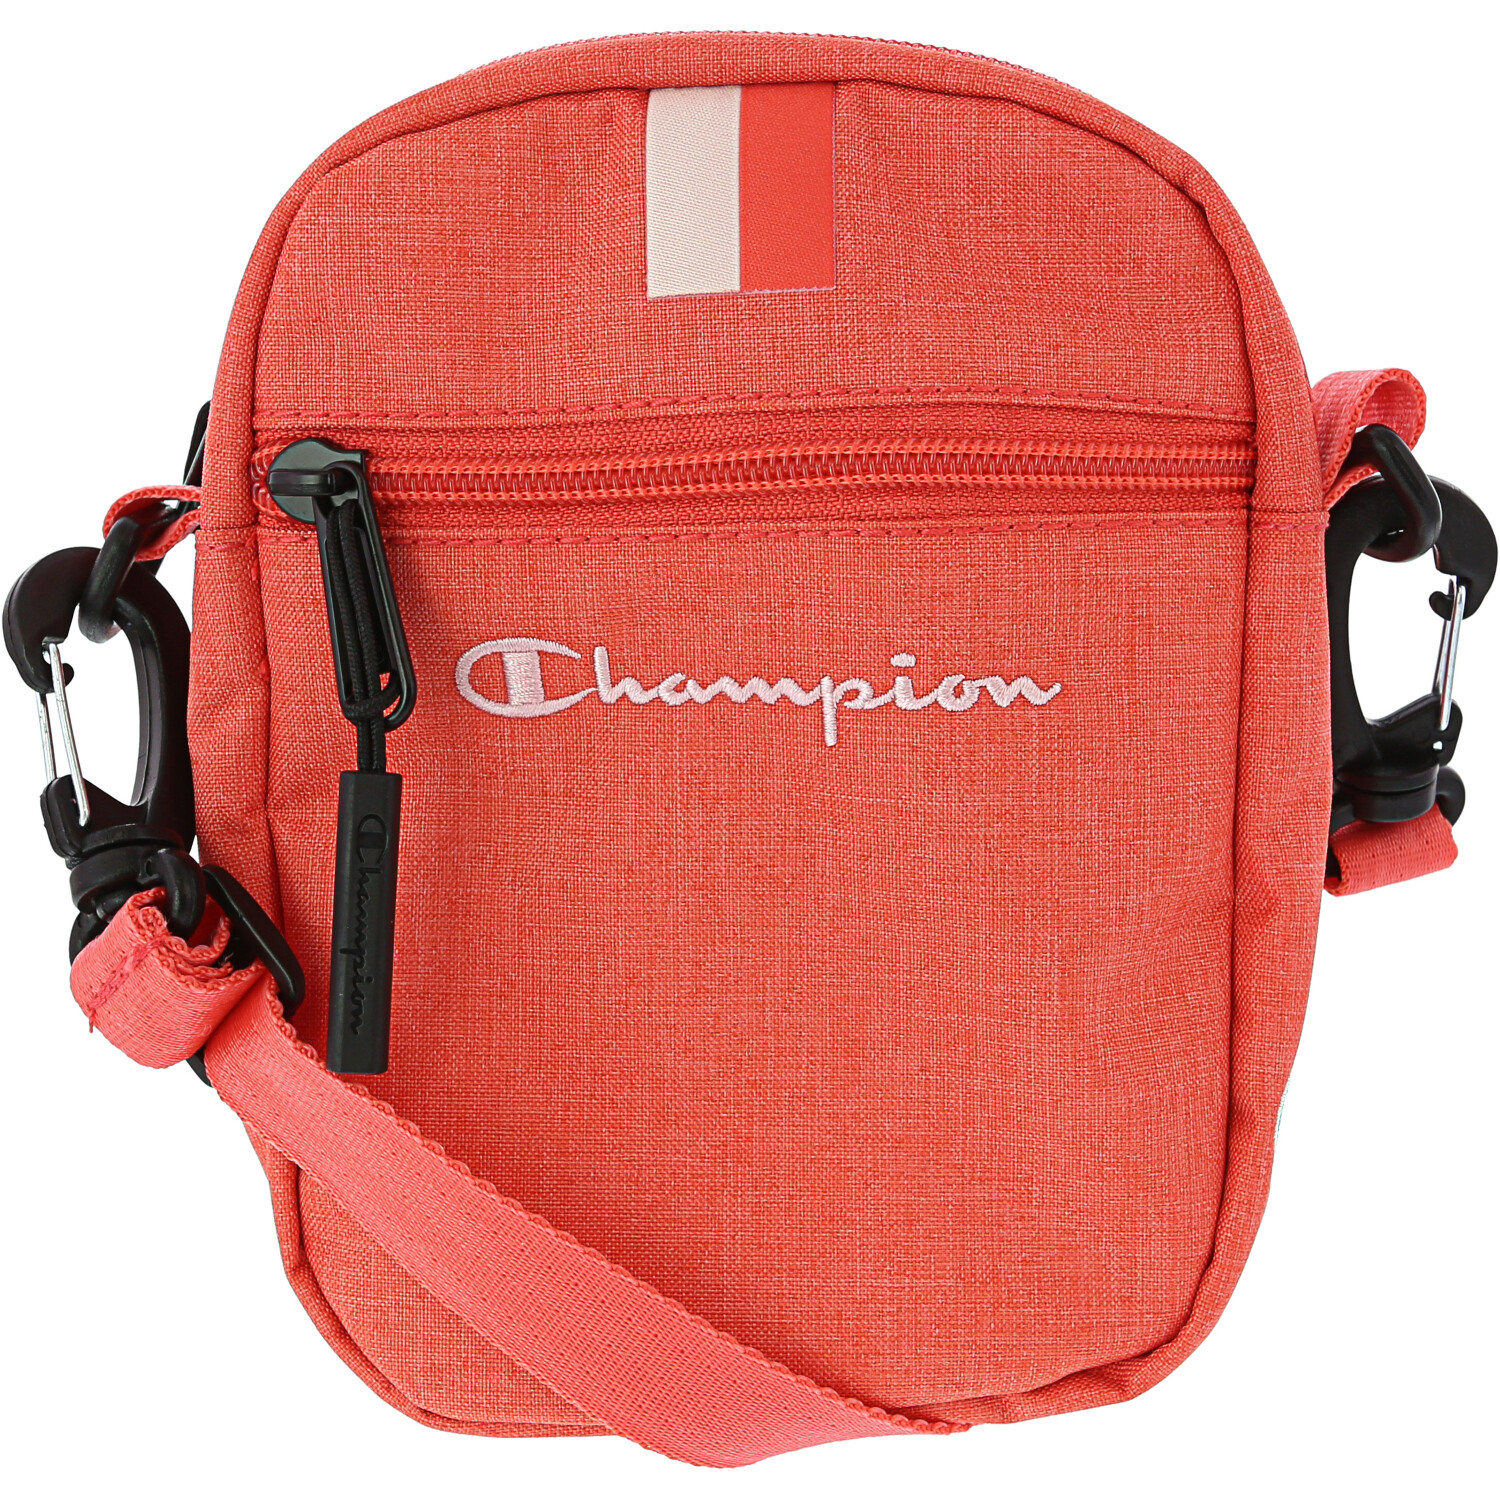 Champion Yc Polyester Cross Body Bag - Coral